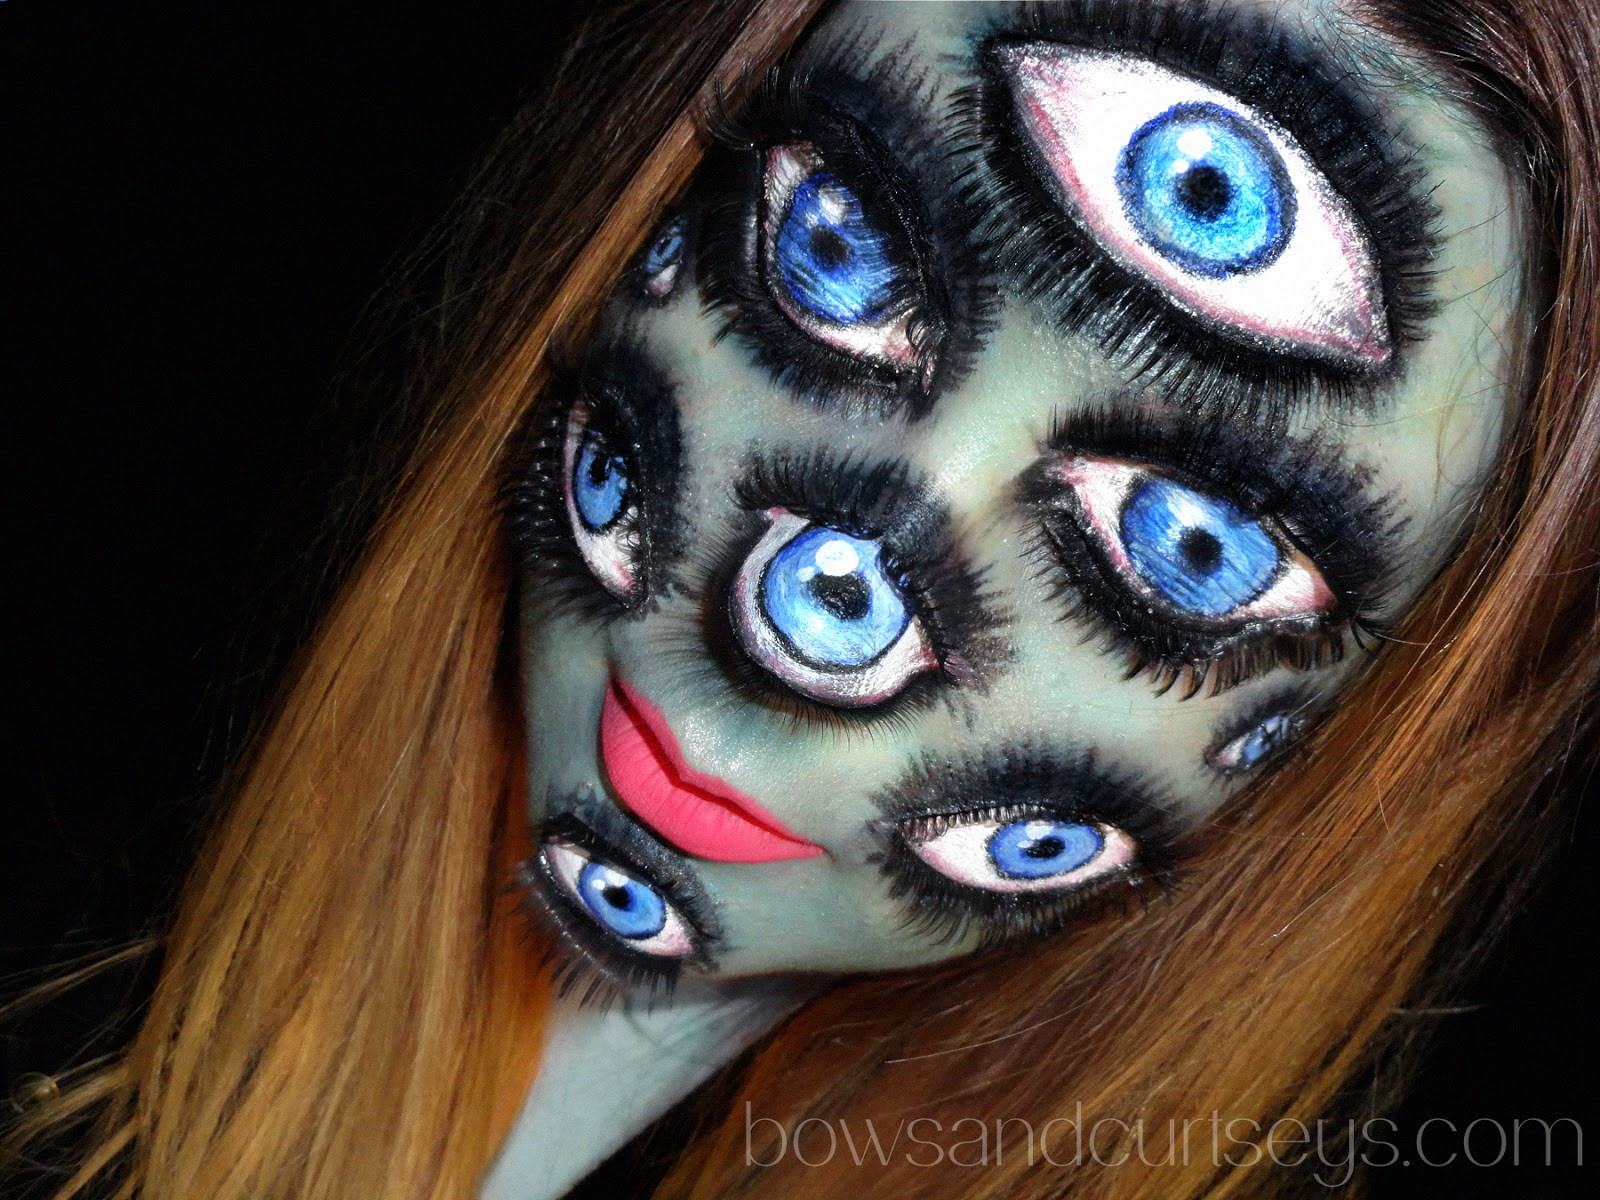 I\'ve Got My Eyes on You - Halloween Makeup ~ Bows and Curtseys